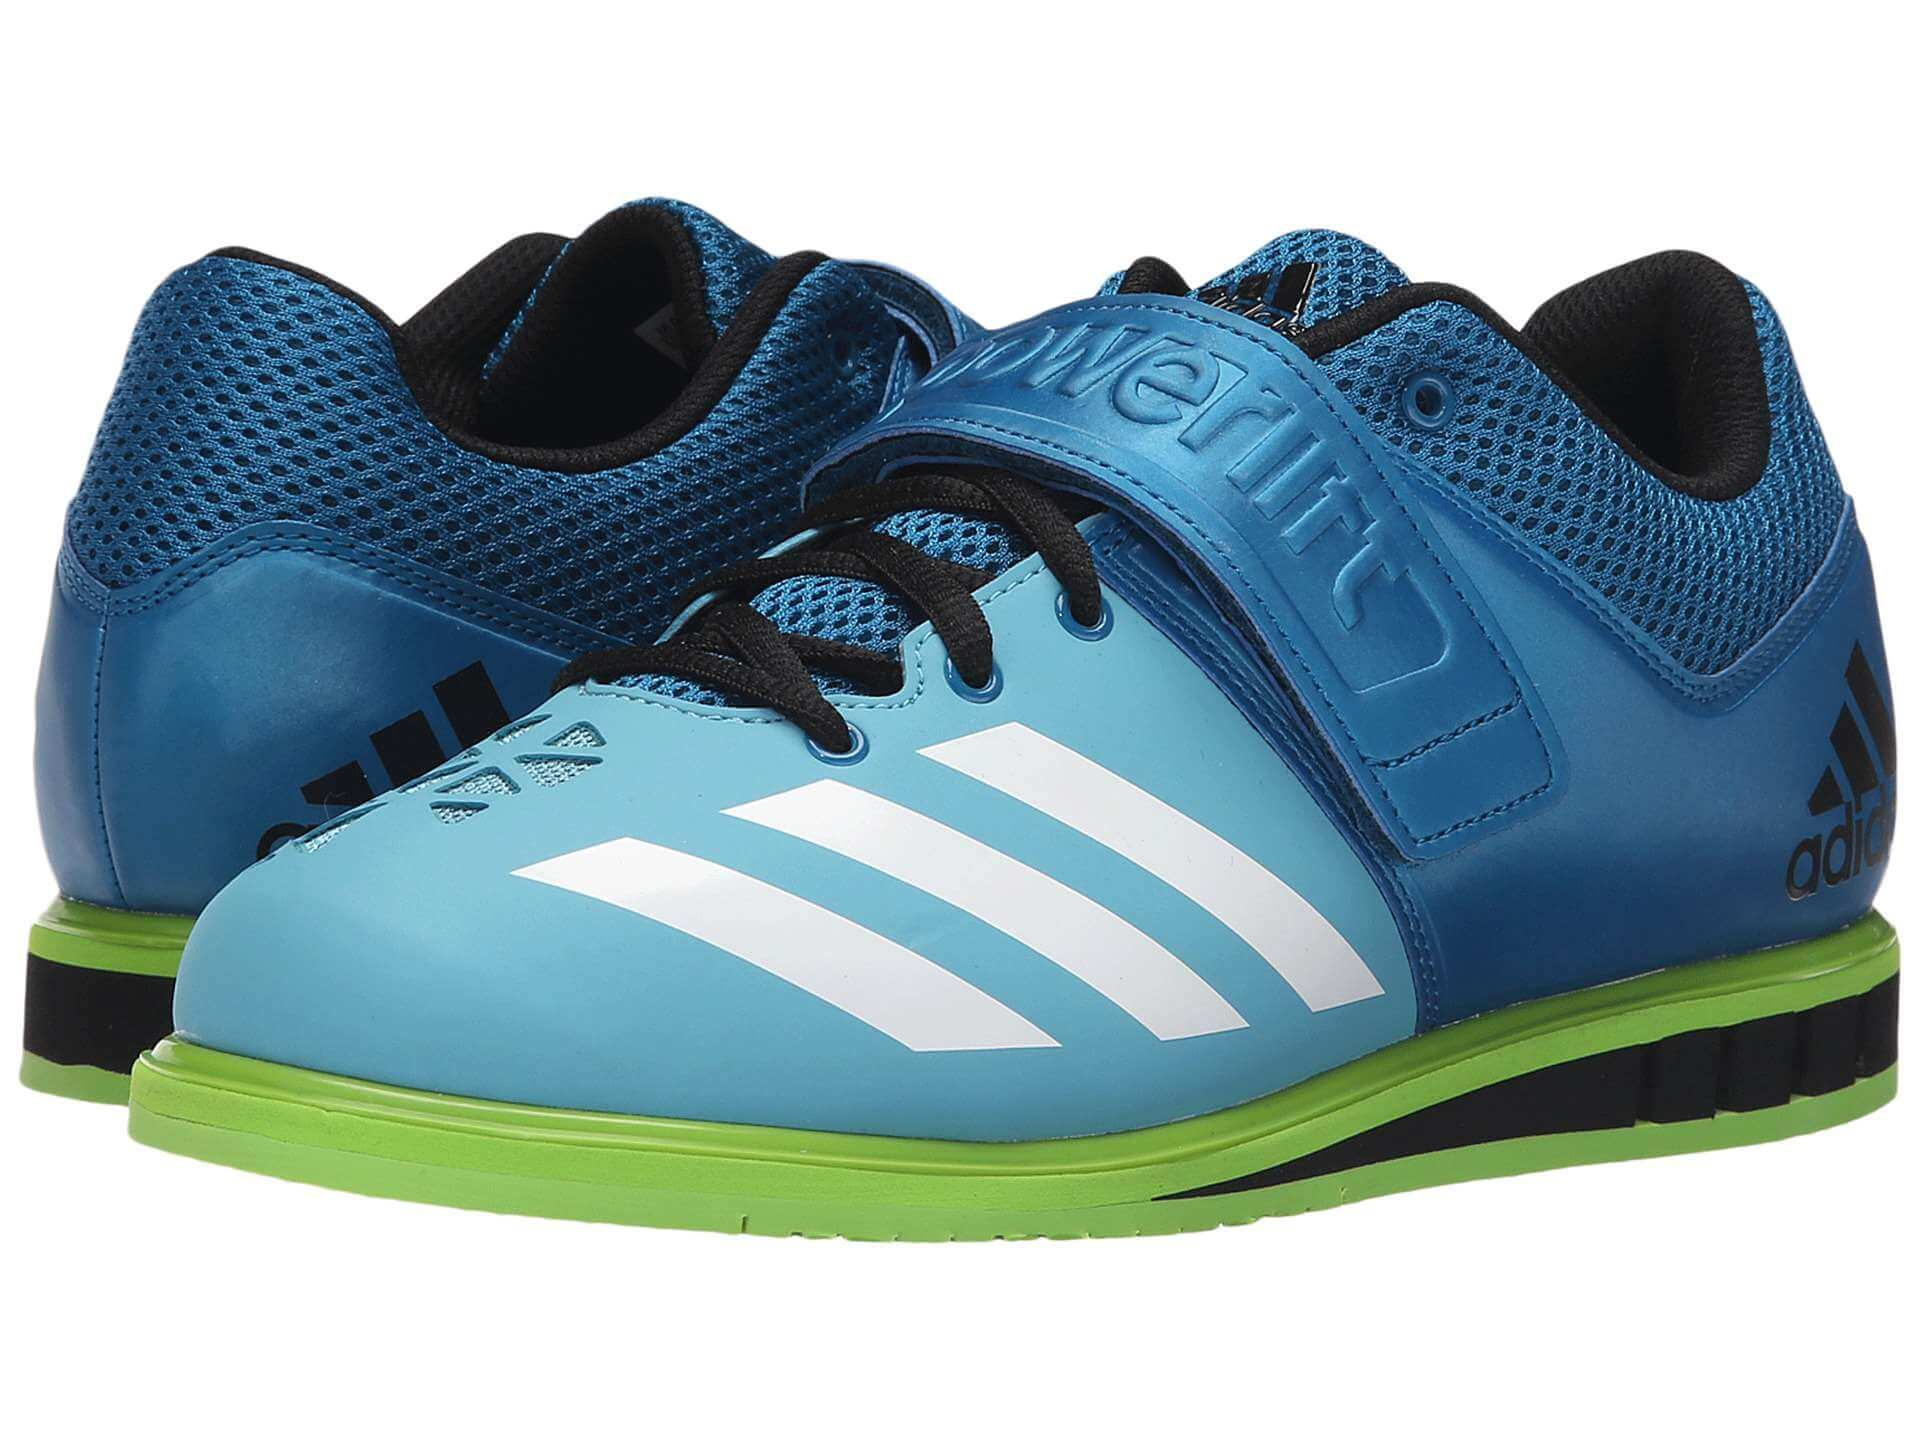 Adidas Powerlift 3.0 Review - Weight Lifting Footwear 94a251b72